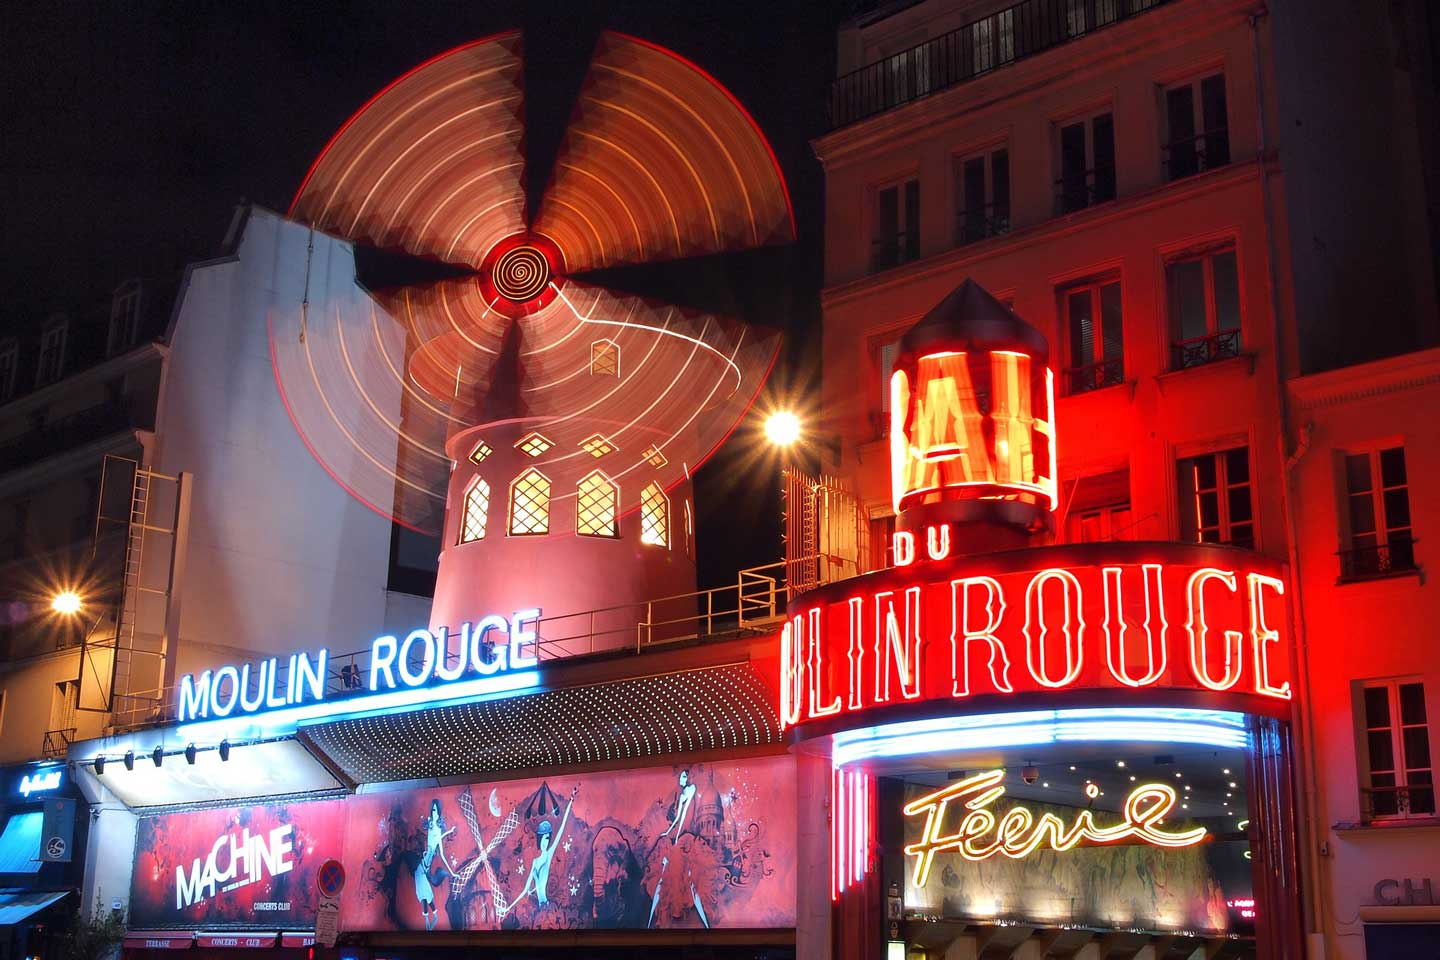 paris-moulin rouge